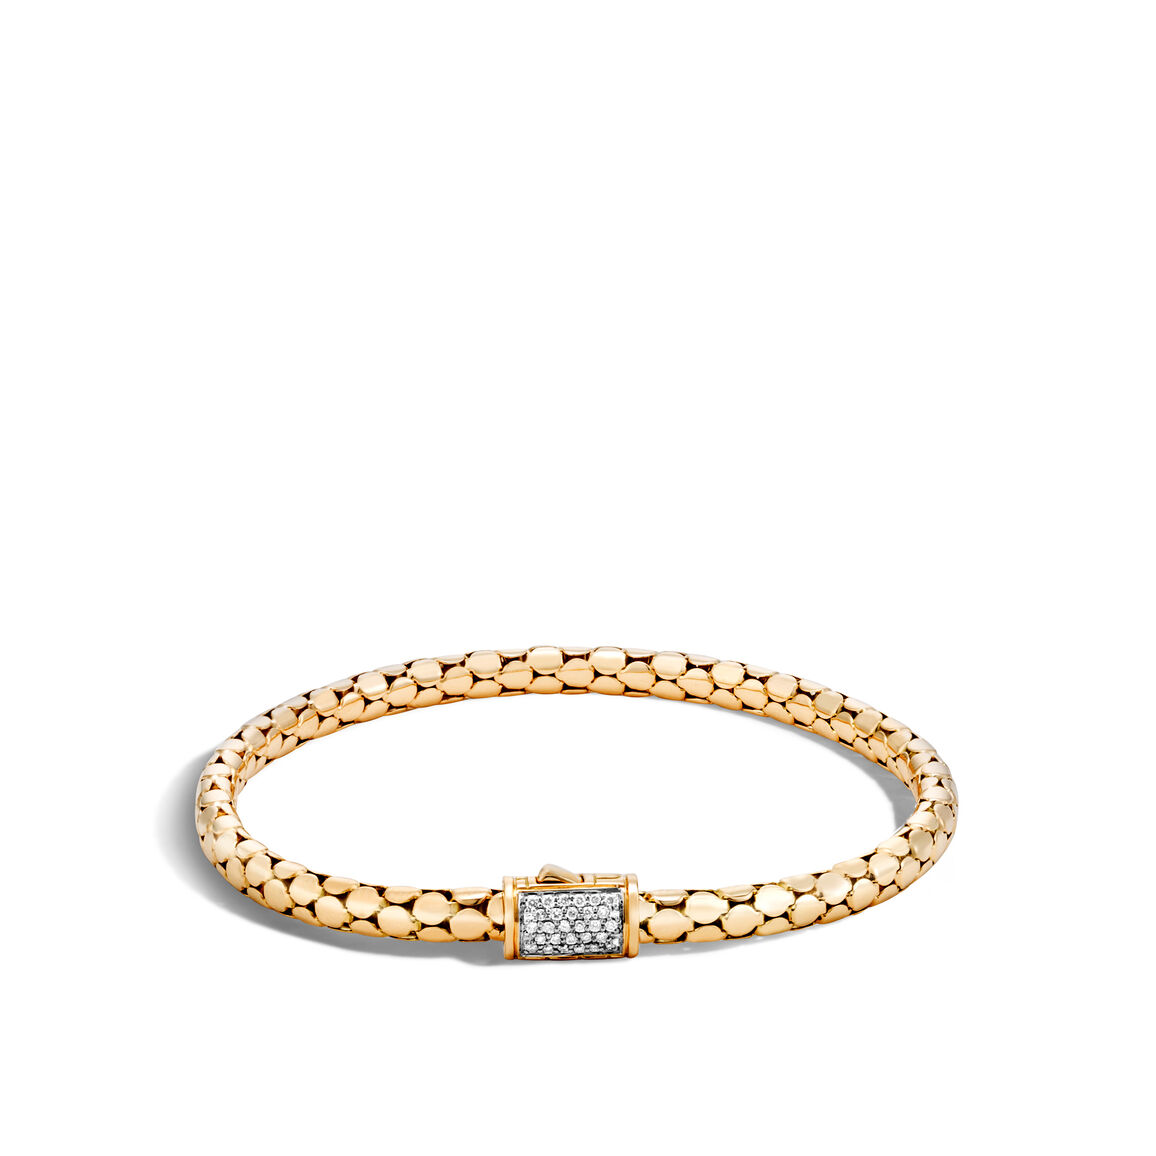 Dot 4.5MM Bracelet in 18K Gold with Diamonds